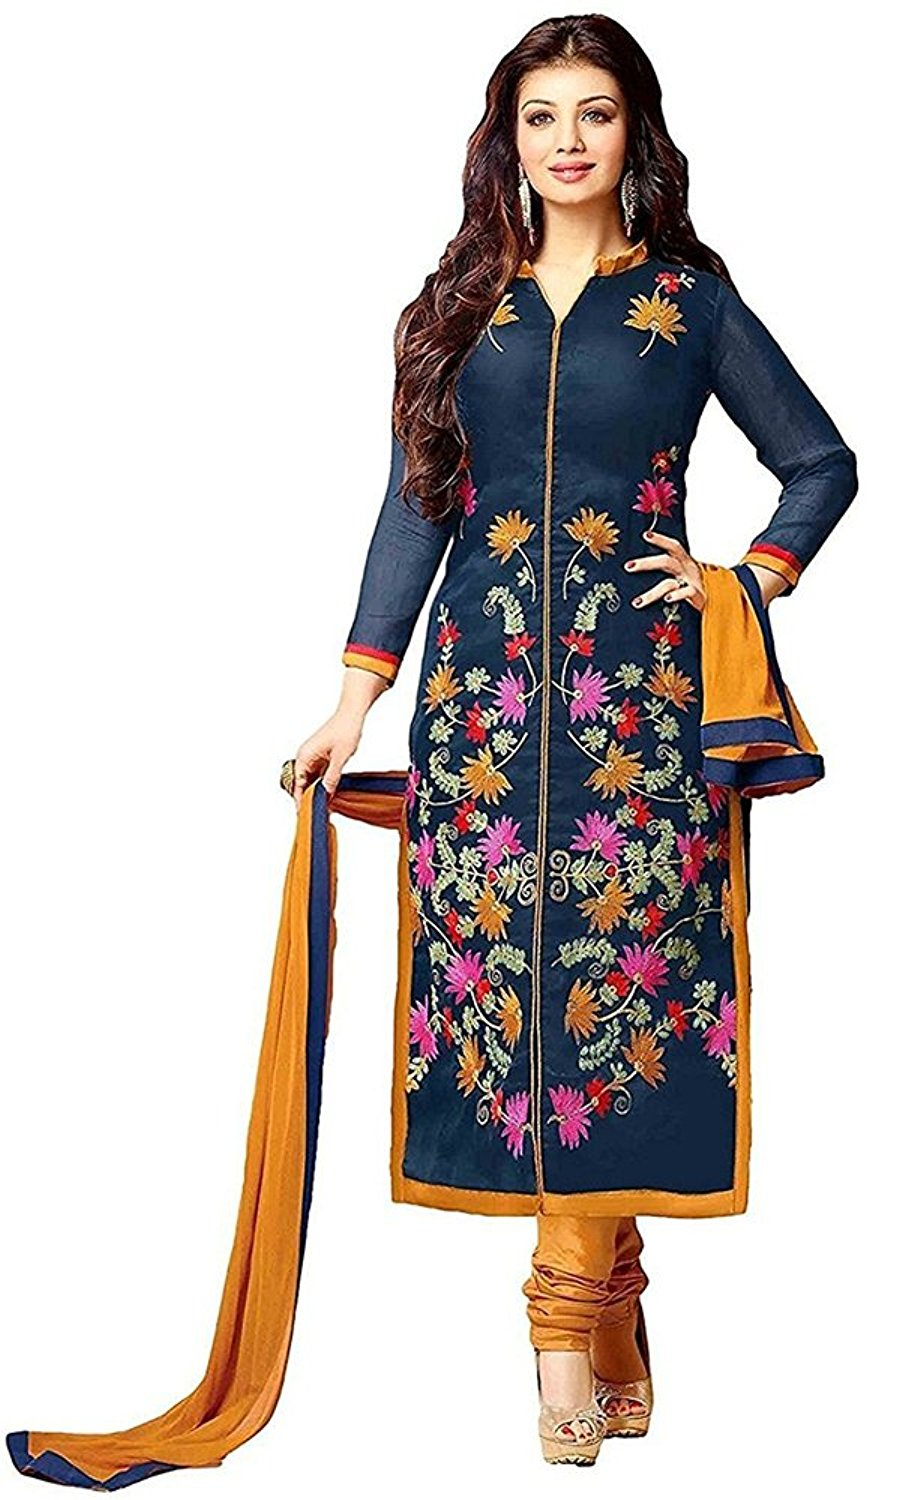 Women party wear Rensil Designer new top Dress Material Today offer buy in Low Price Sale Navy Blue Color Cotton Fabric Free Size Salwar Suit